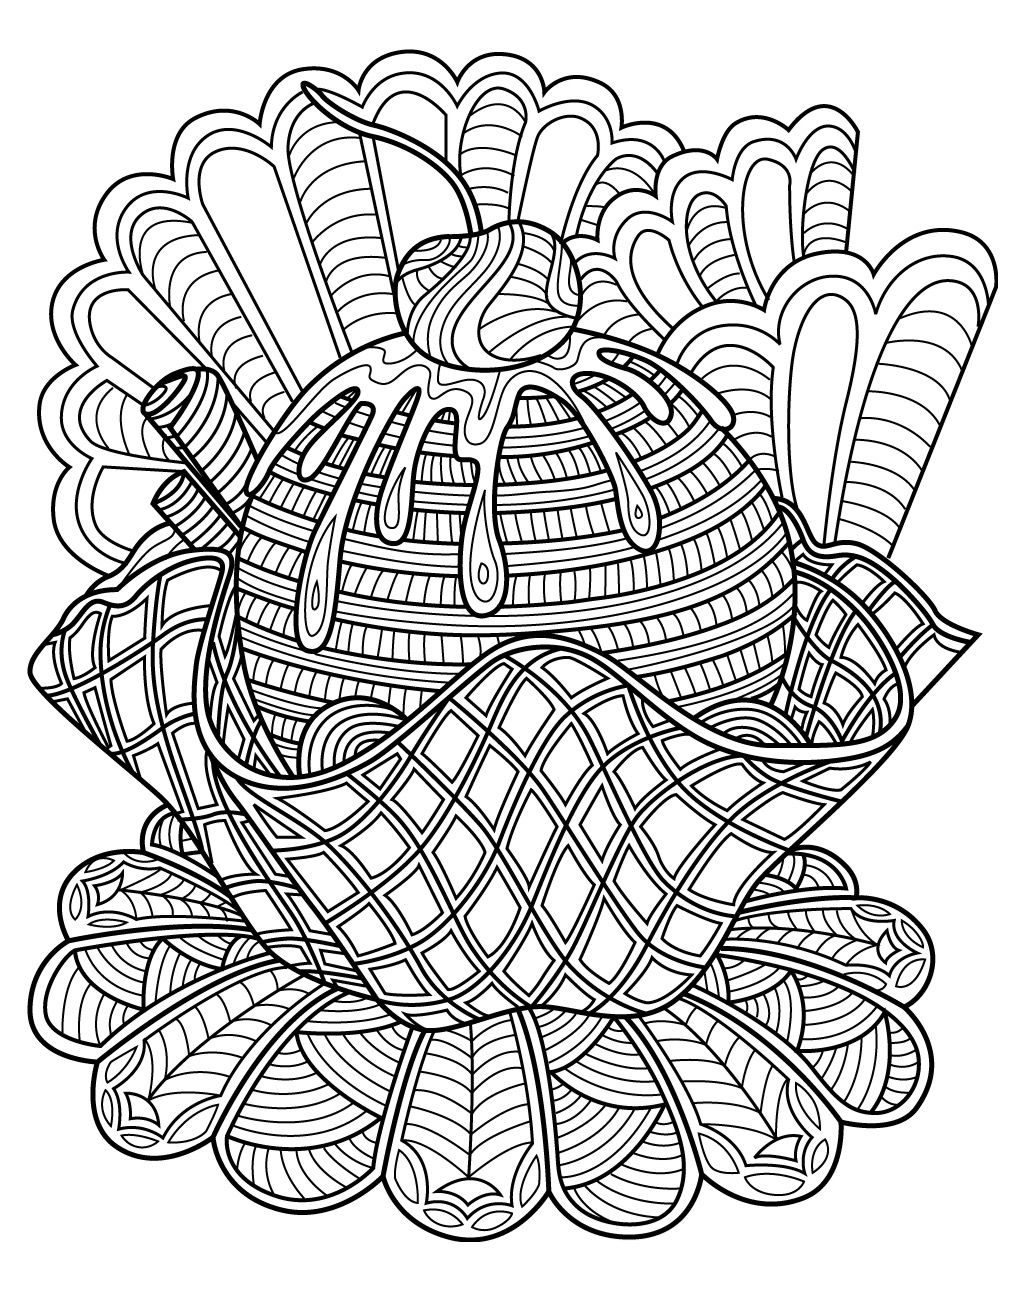 Sweets coloring page | Colorish: free coloring app for adults by ...